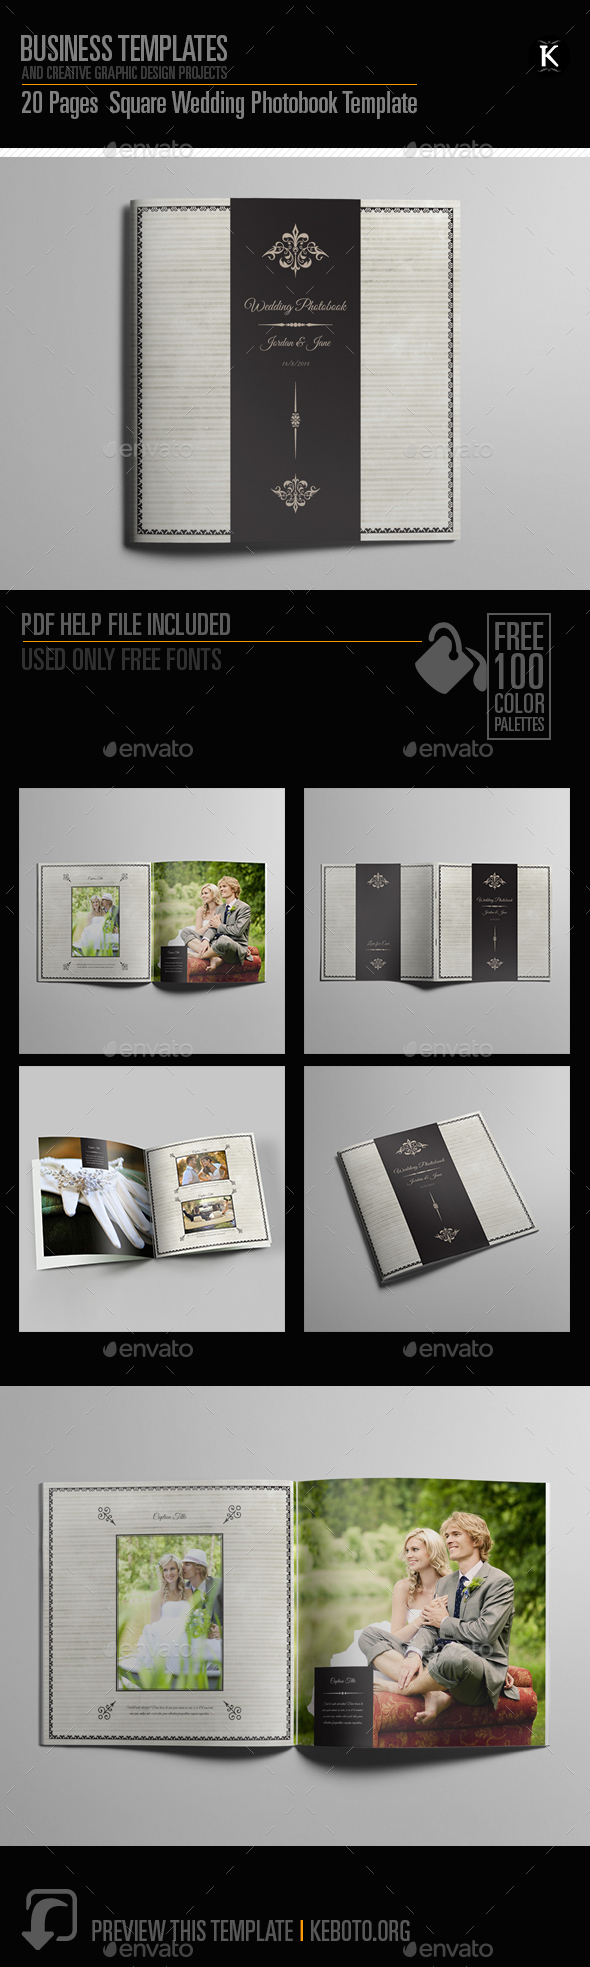 20 pages square wedding photobook template by keboto graphicriver. Black Bedroom Furniture Sets. Home Design Ideas